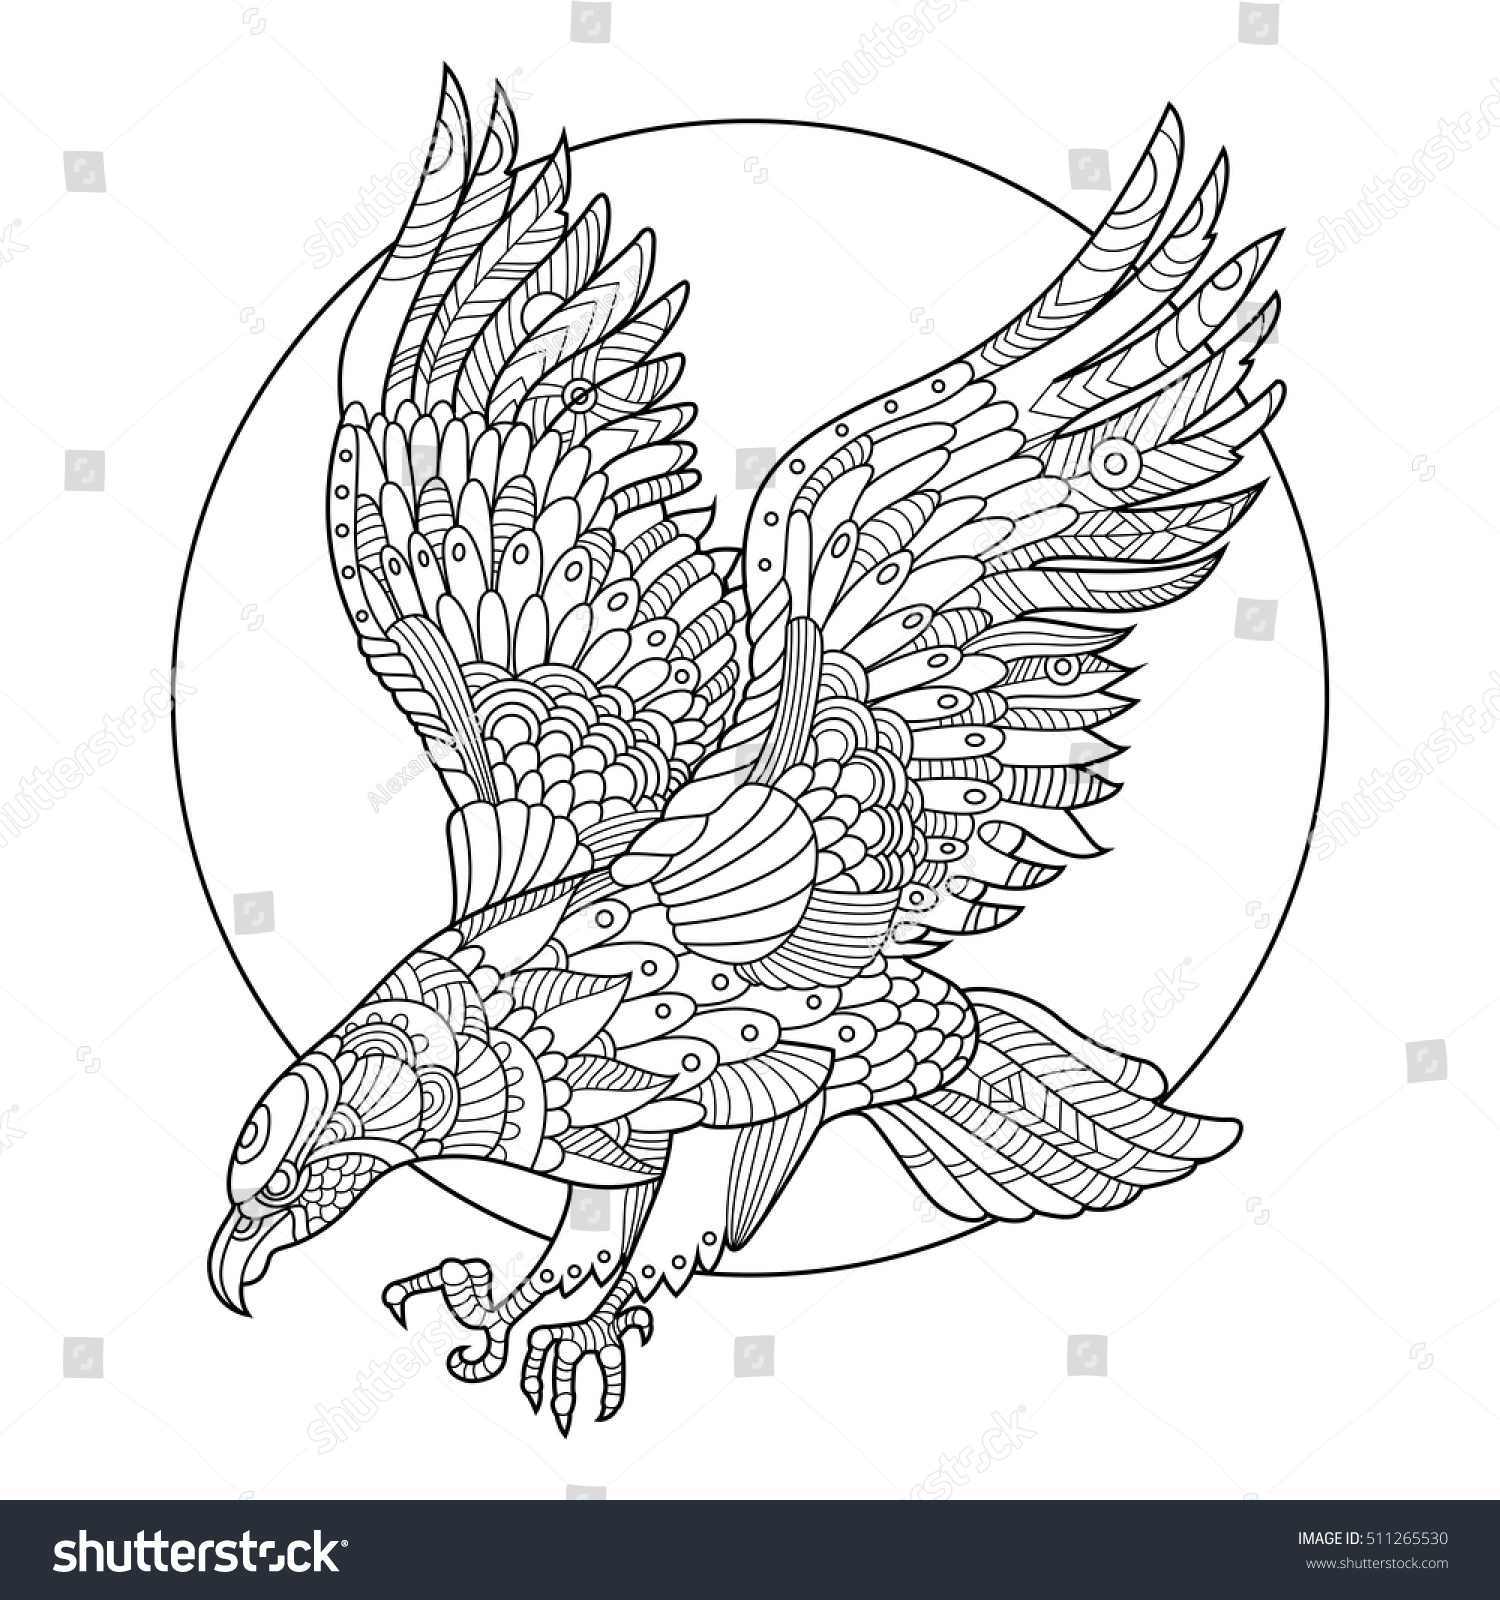 Eagle Bird Coloring Book For Adults Vector Illustration Anti Stress Adult